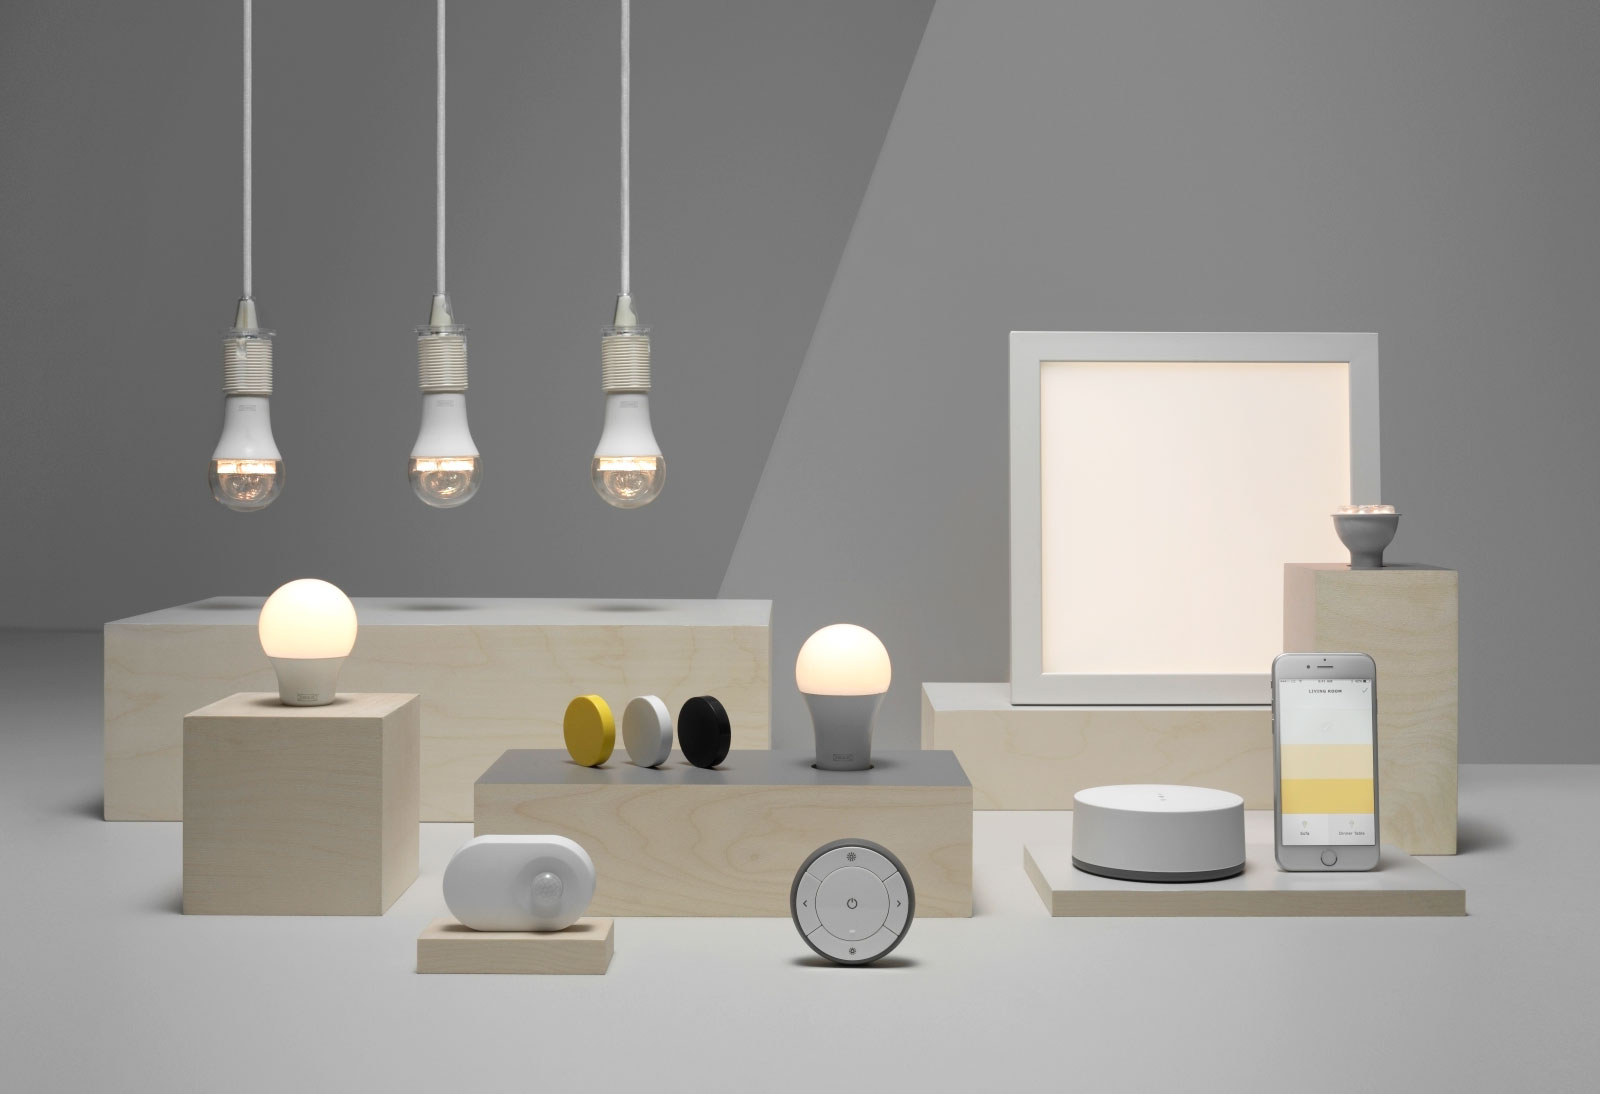 ikea s smart lighting officially supports homekit